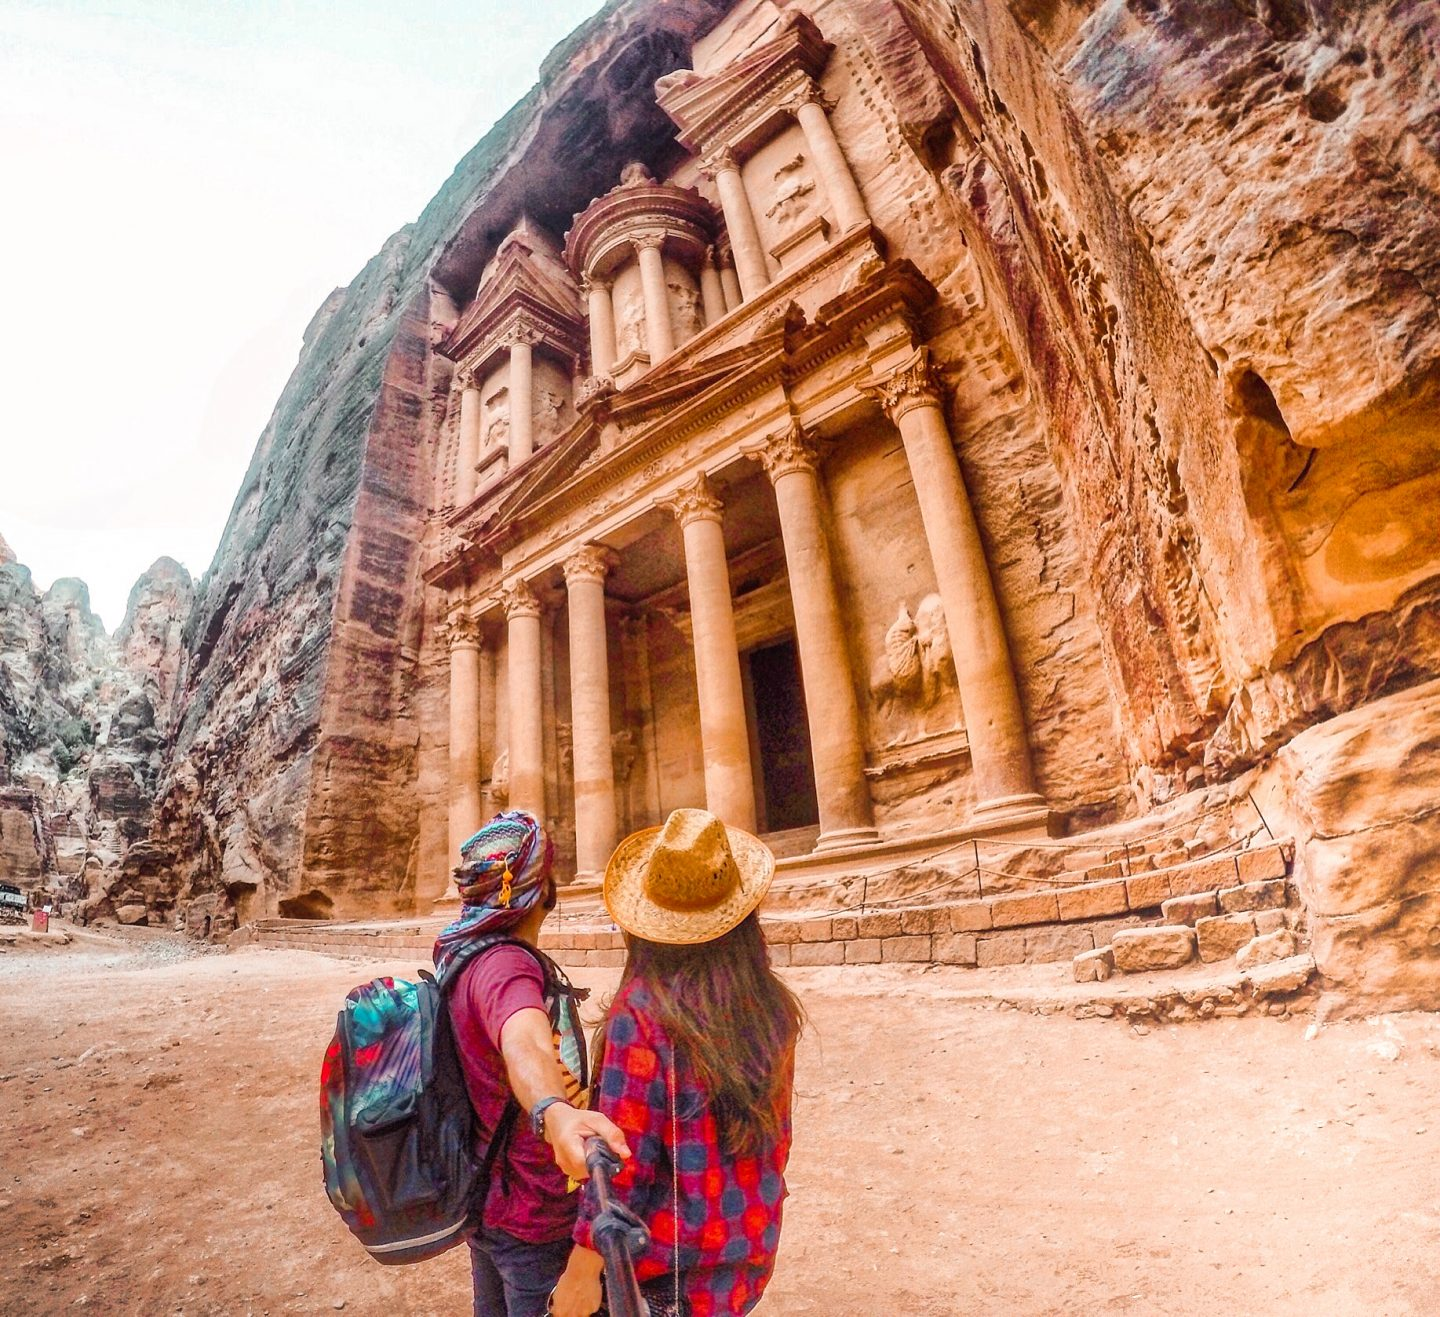 The main monument in Petra is called 'The Treasury'